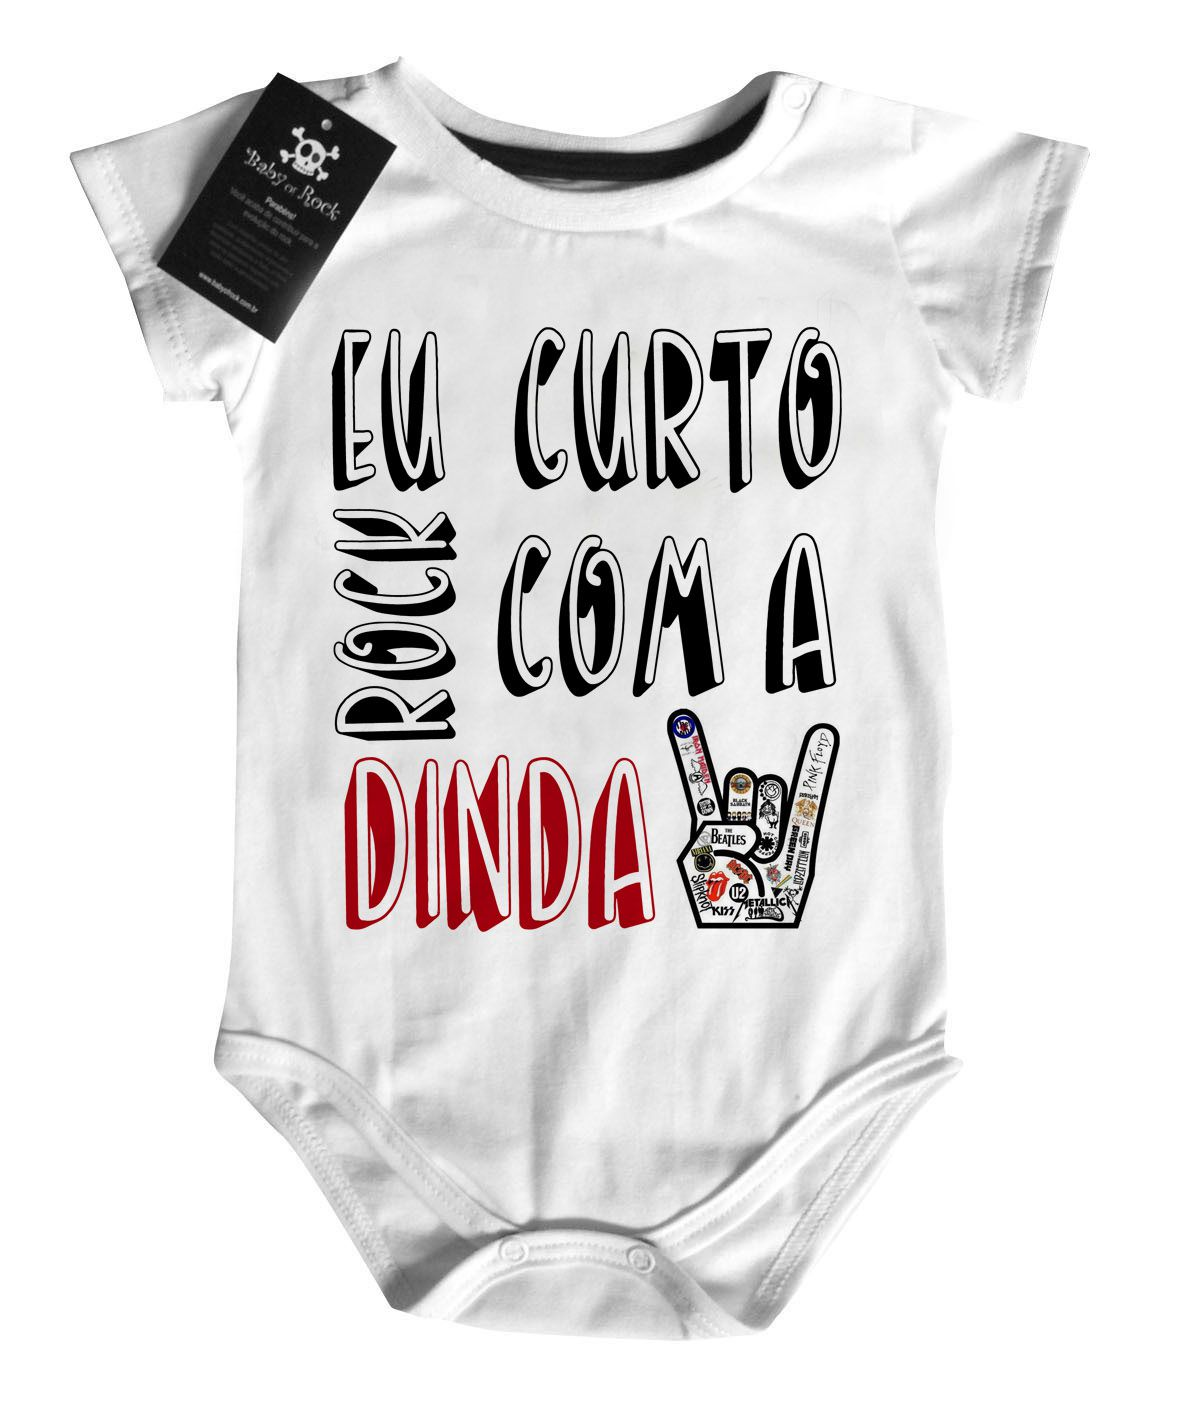 Body Baby Rock - Rock com a dinda - White  - Baby Monster - Body Bebe